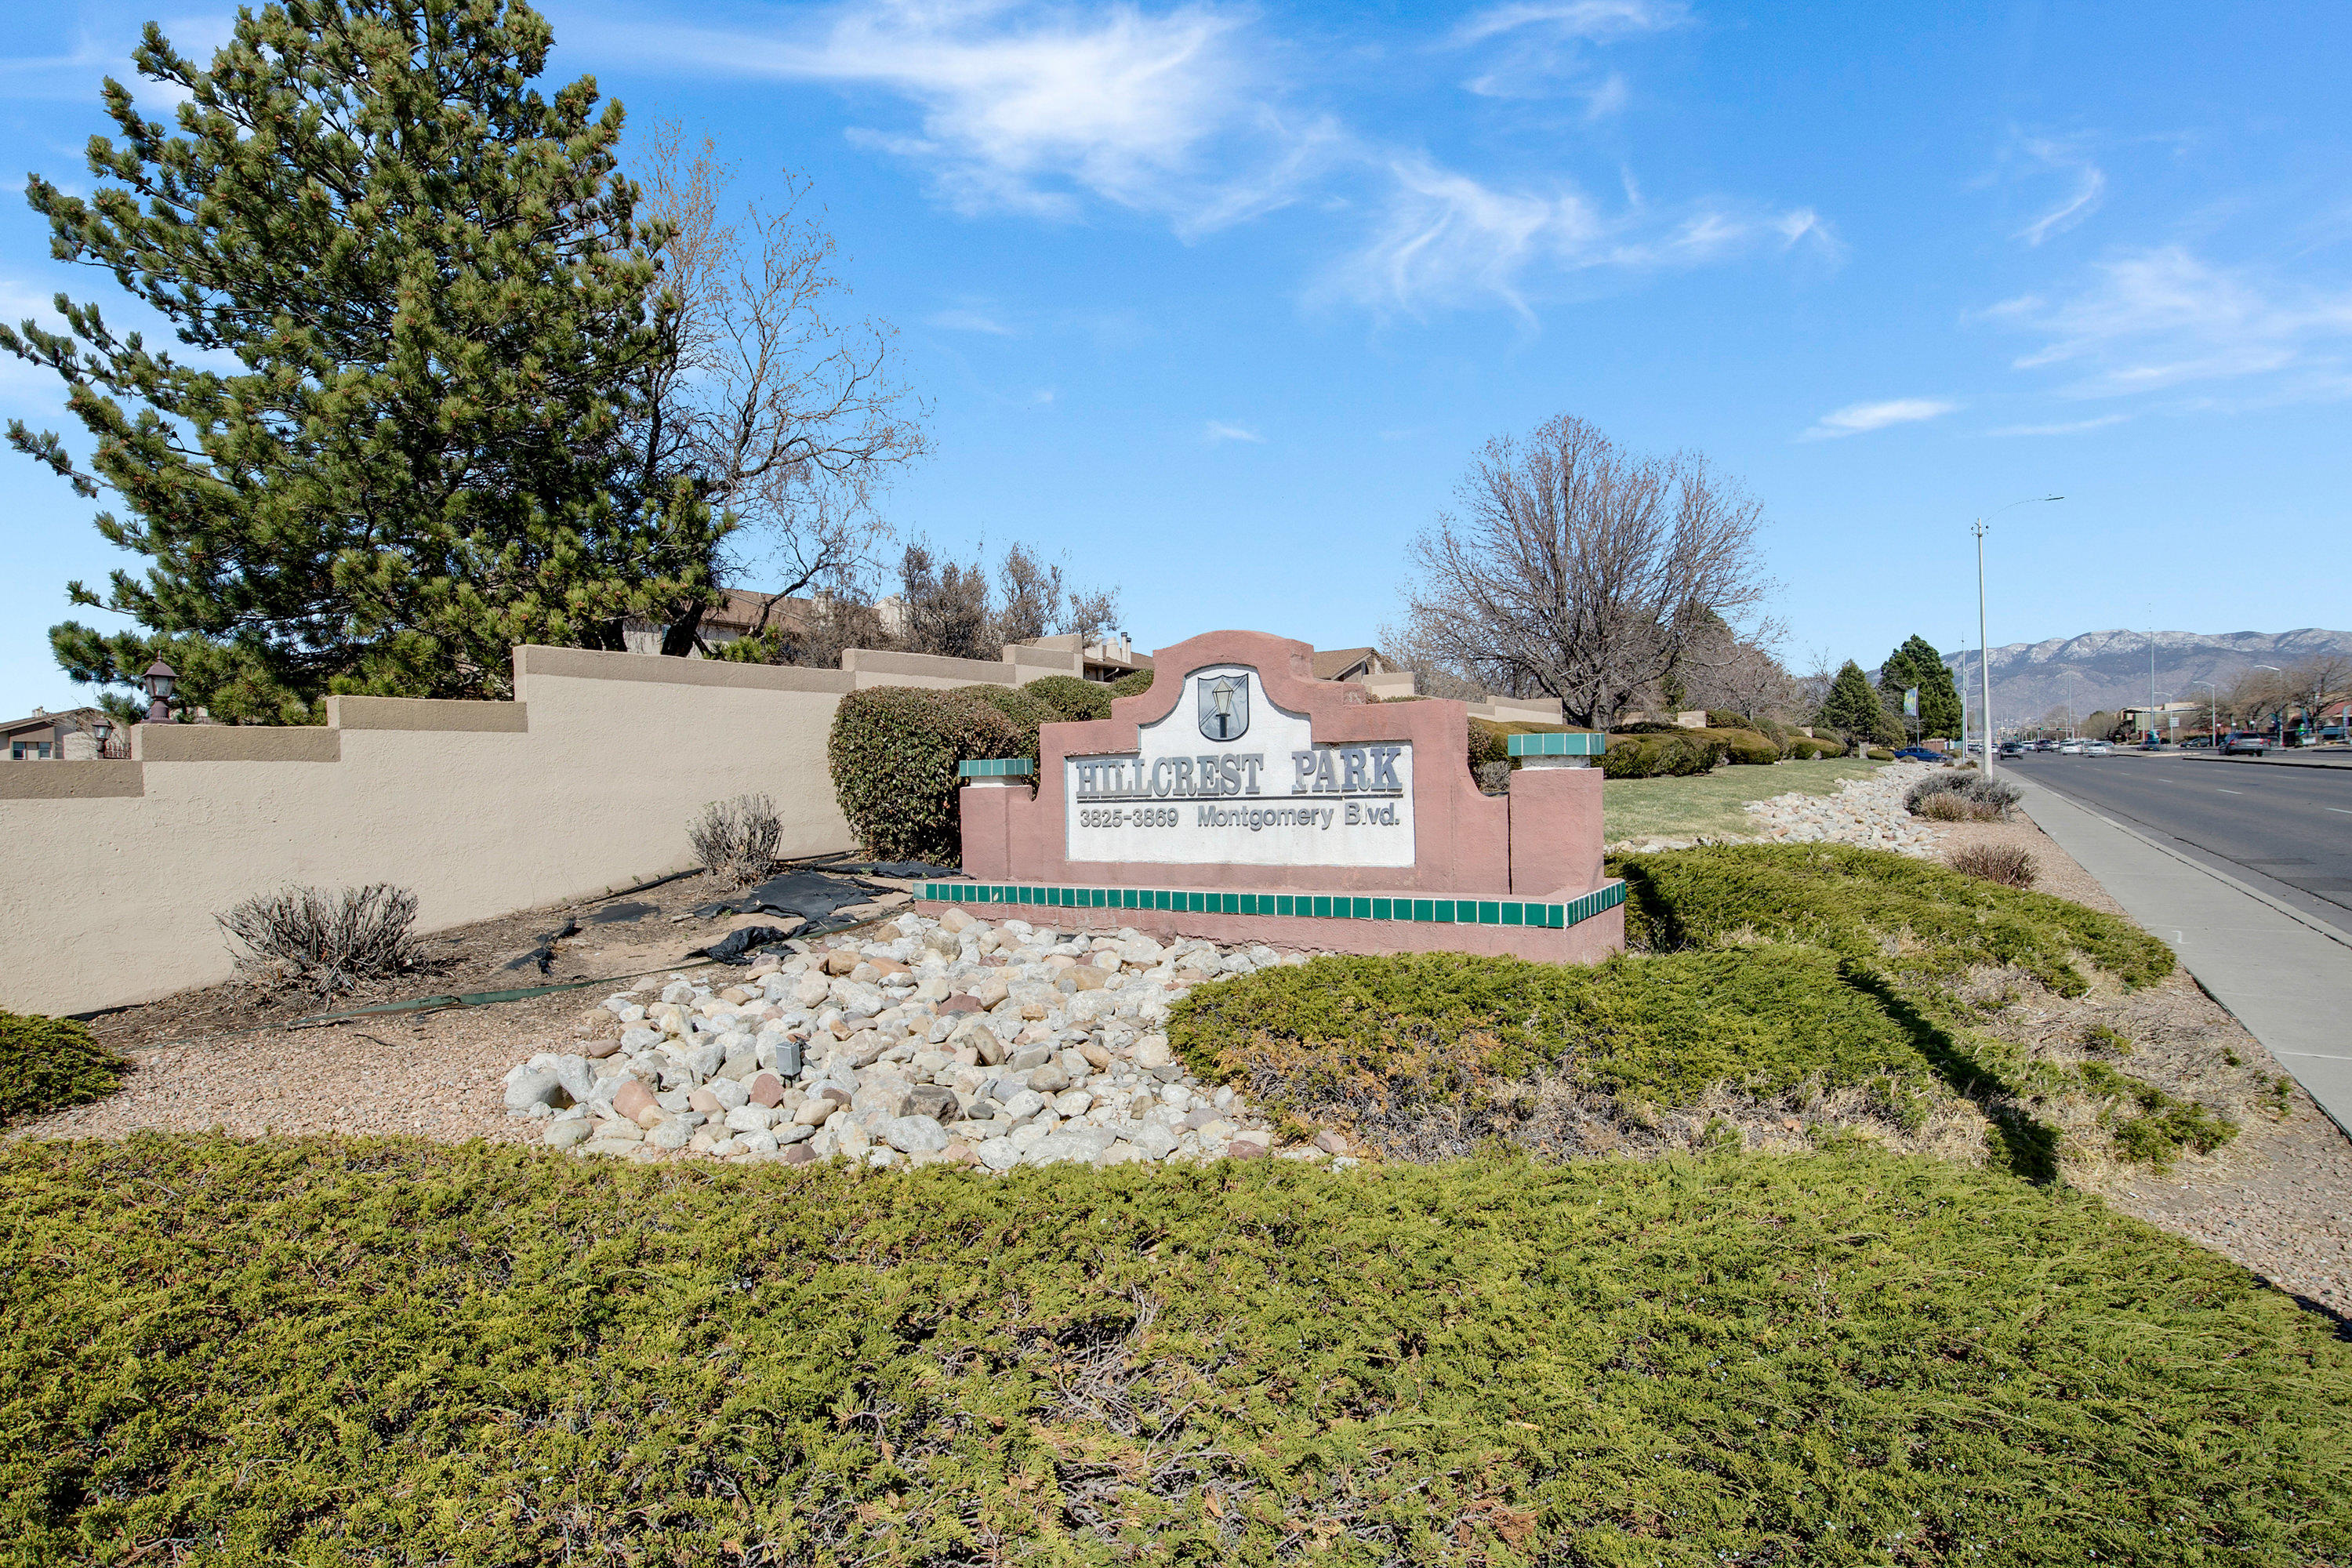 This is a beautiful condo located in a gated community just off Montgomery and I-25. Has brand new carpet and vinyl flooring! Also has PRIVATE washer, dryer and a patio! Community amenities include: security gate, clubhouse, pool, hot tub, sauna, exercise room, laundry facility and park area. HOA covers, gas, water, and exterior maintenance of residence. Don't wait! This condo is going to go fast!